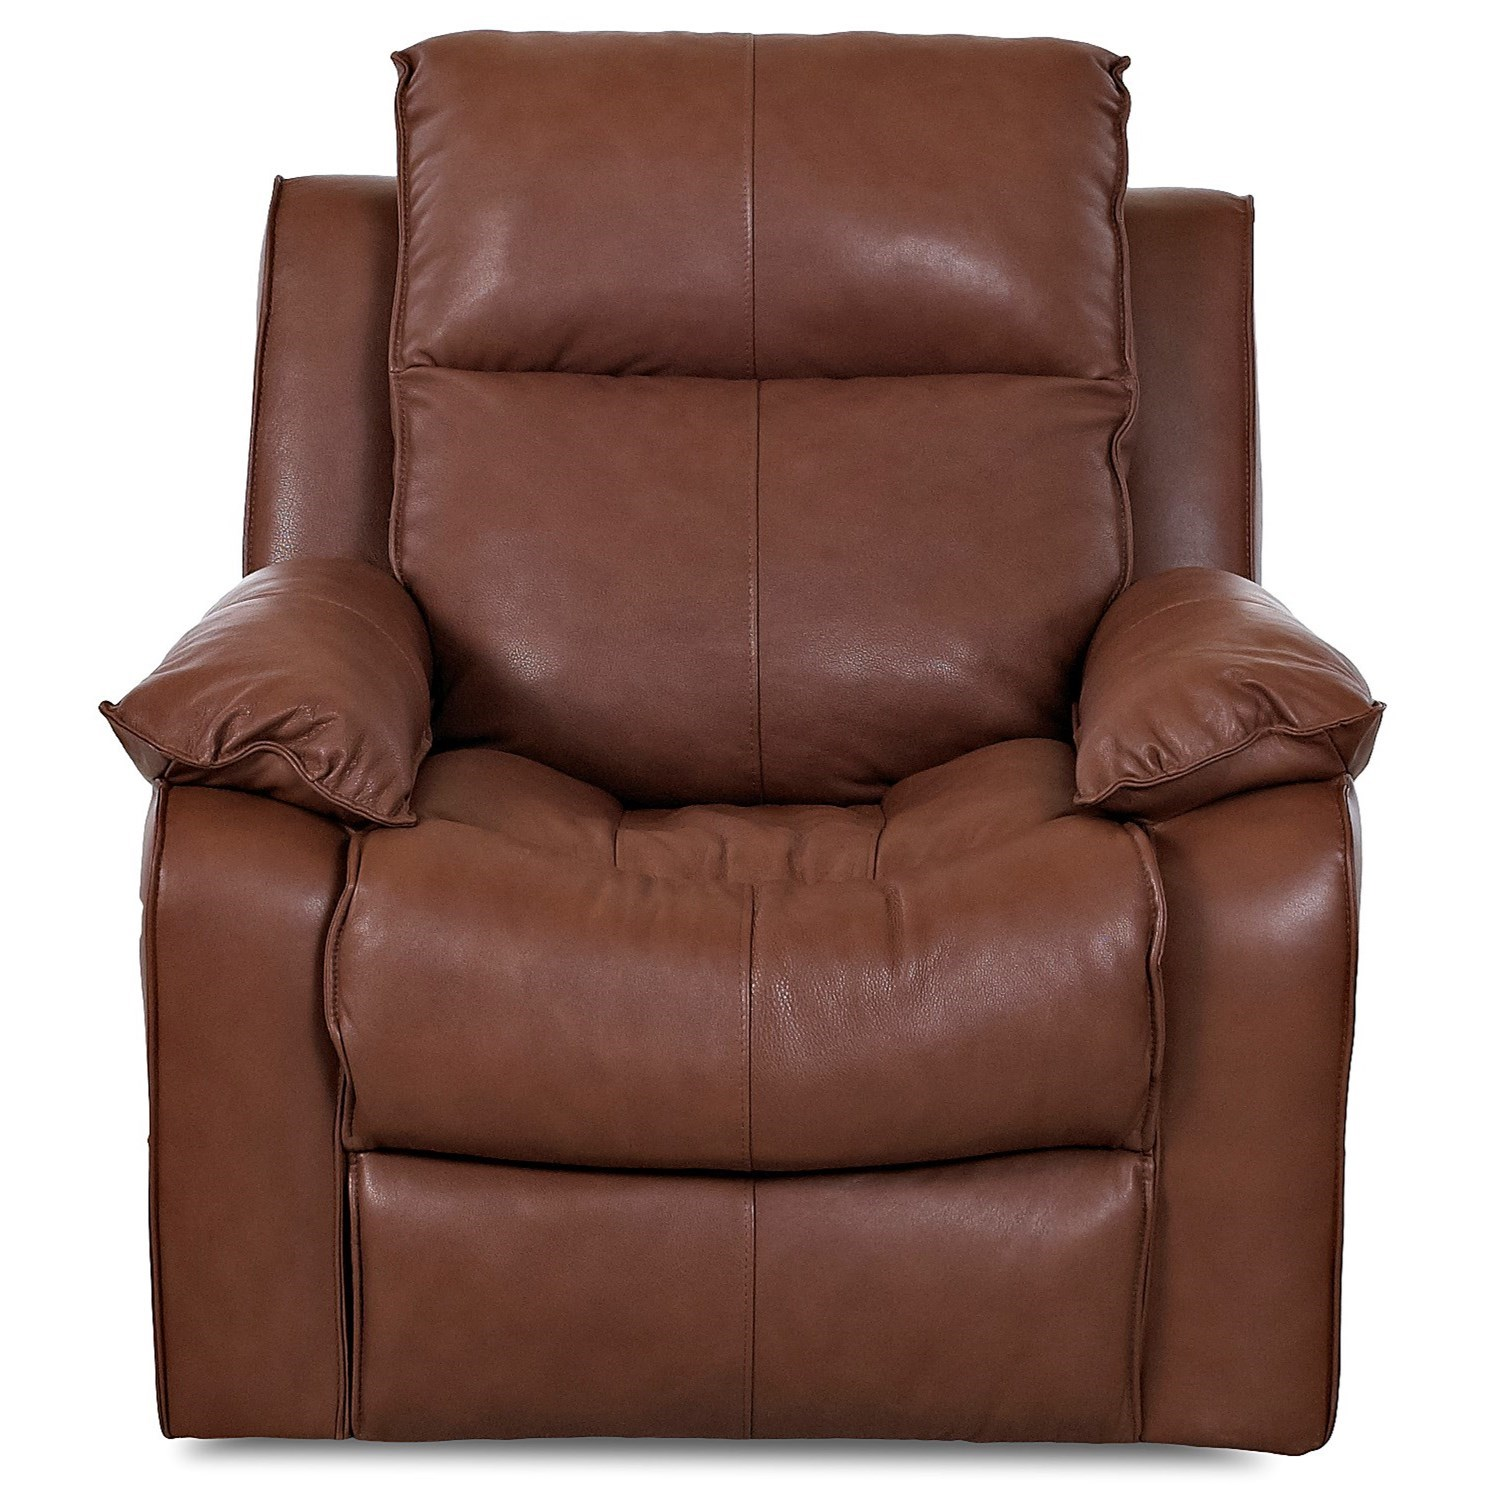 Castaway Casual Power Reclining Chair by Klaussner at Northeast Factory Direct